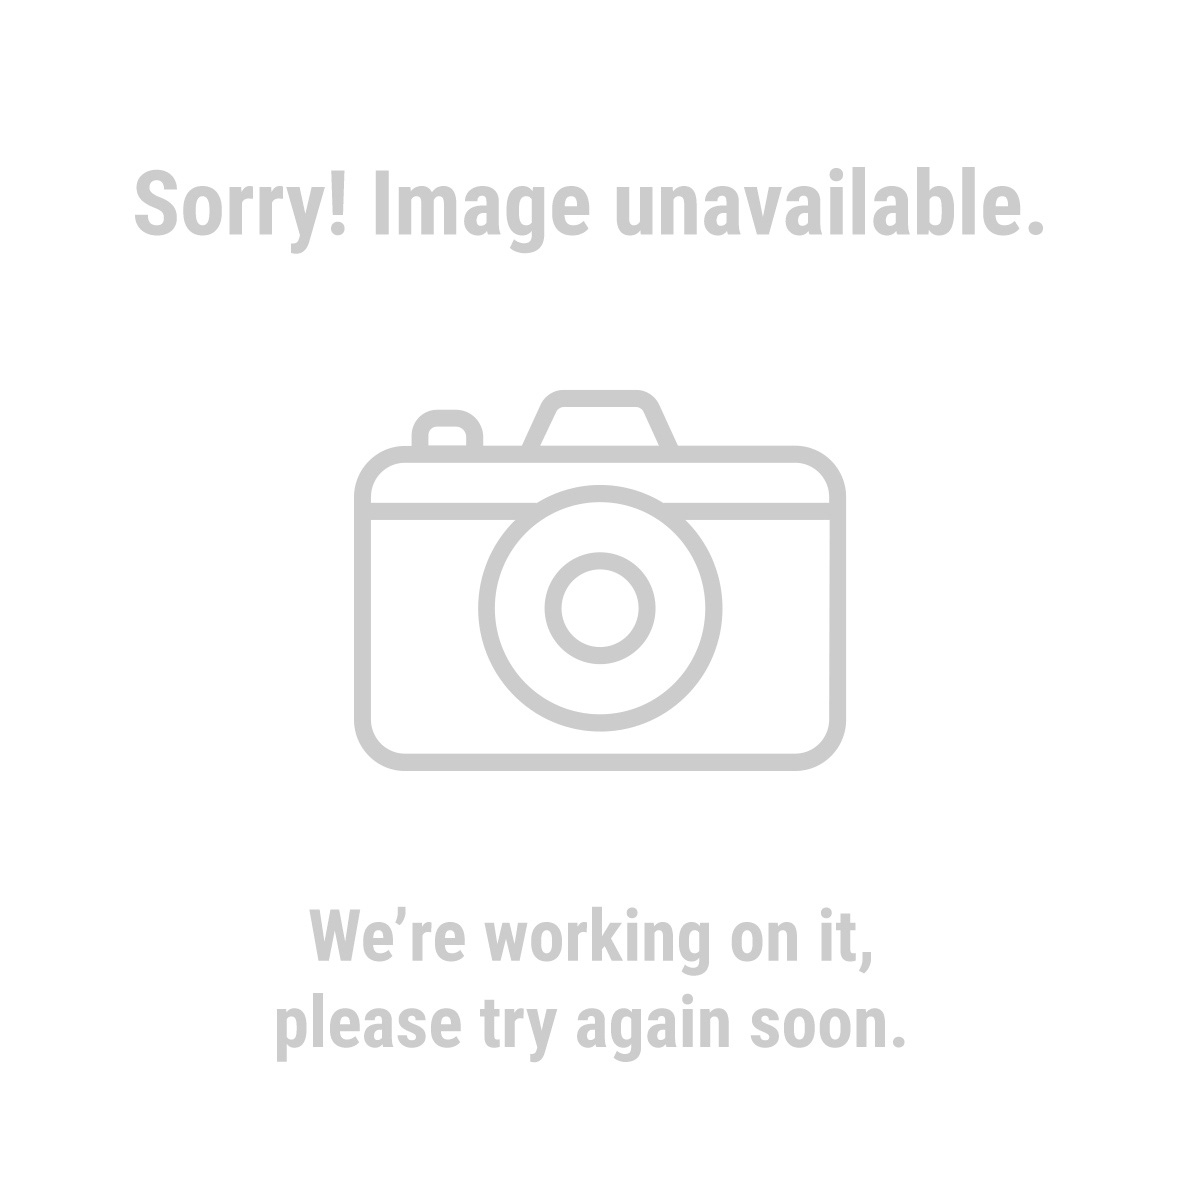 Western Safety 62821 Hard Cap Knee Pads